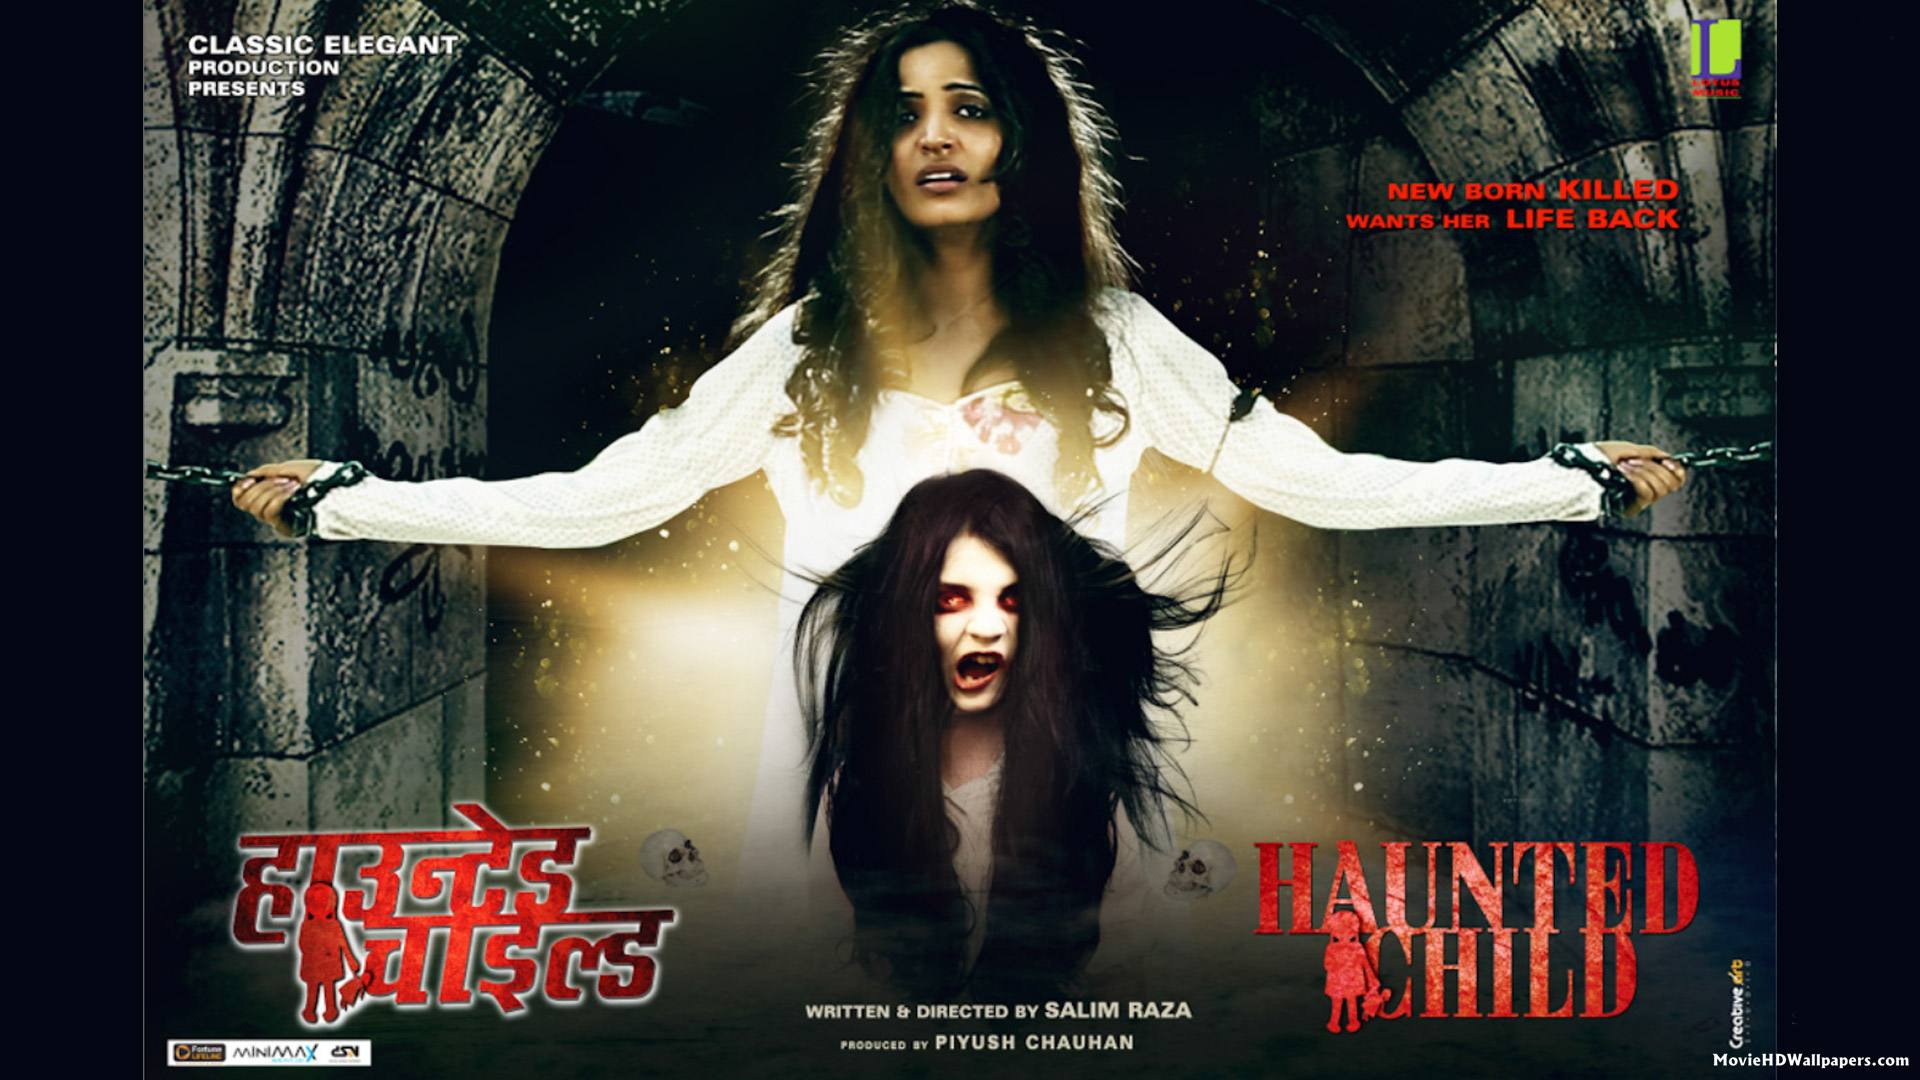 Hd movies torrents free download pink haunted poop [mp4] [ipad] by.